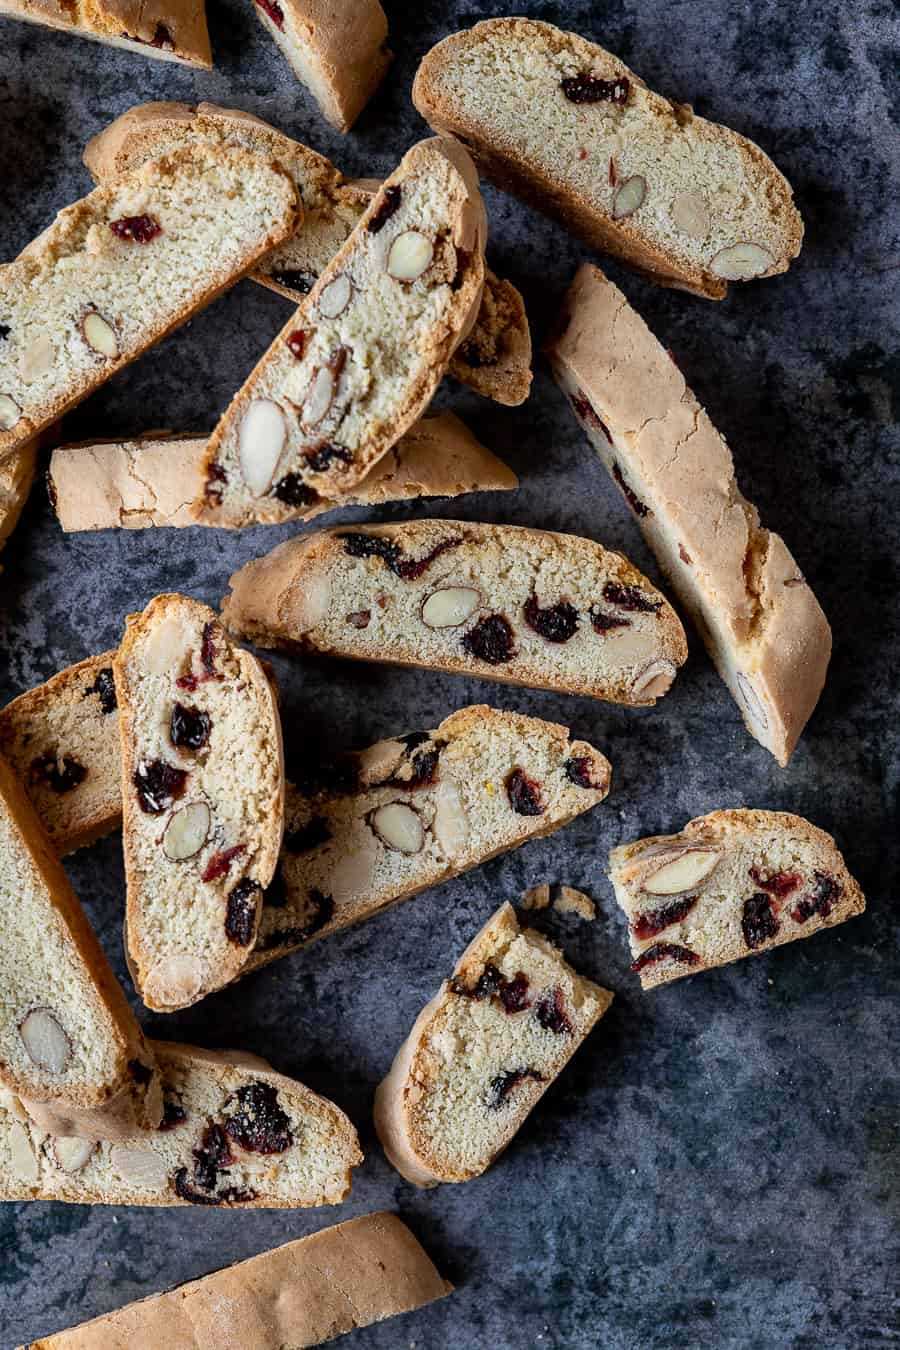 Vegan biscotti on a dark grey background, one broken in half.